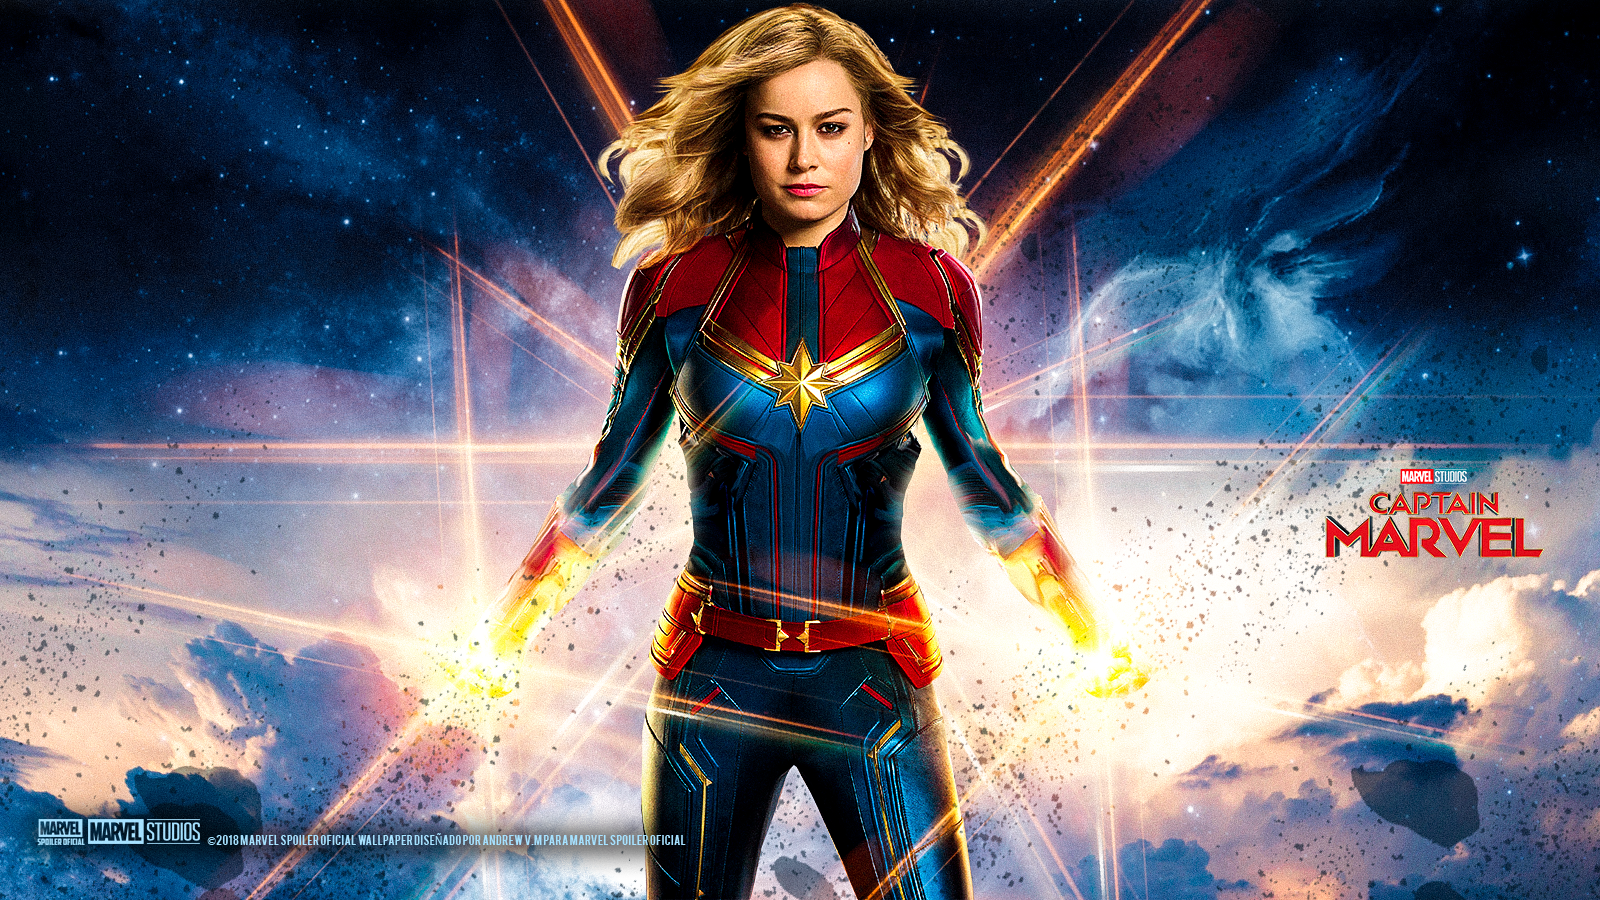 1600x900 Captain Marvel HD Wallpapers Download In 4K - Whats Images